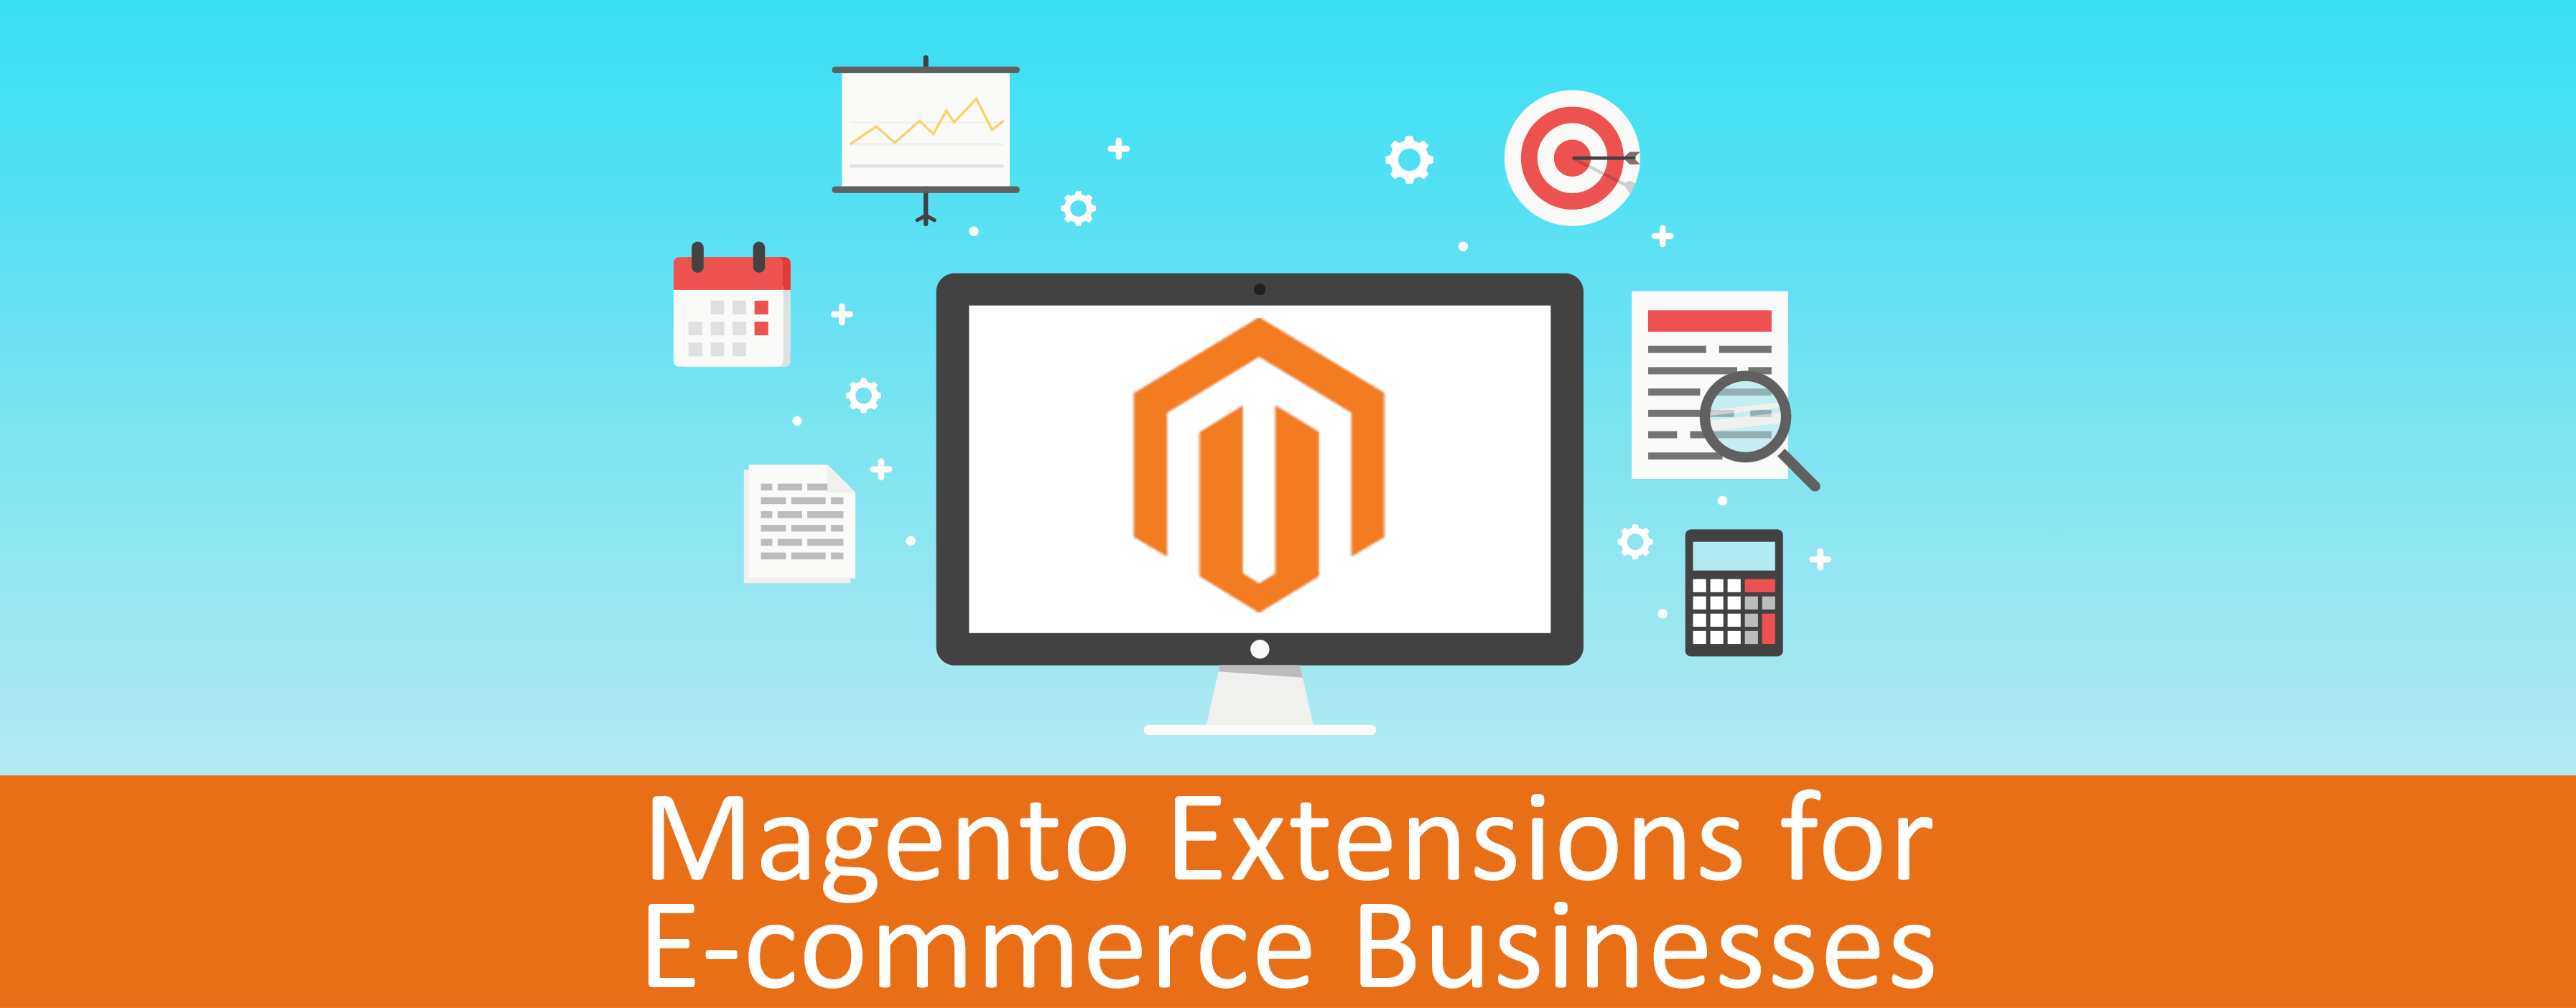 Top Rated Magento Extensions for All E-commerce Businesses